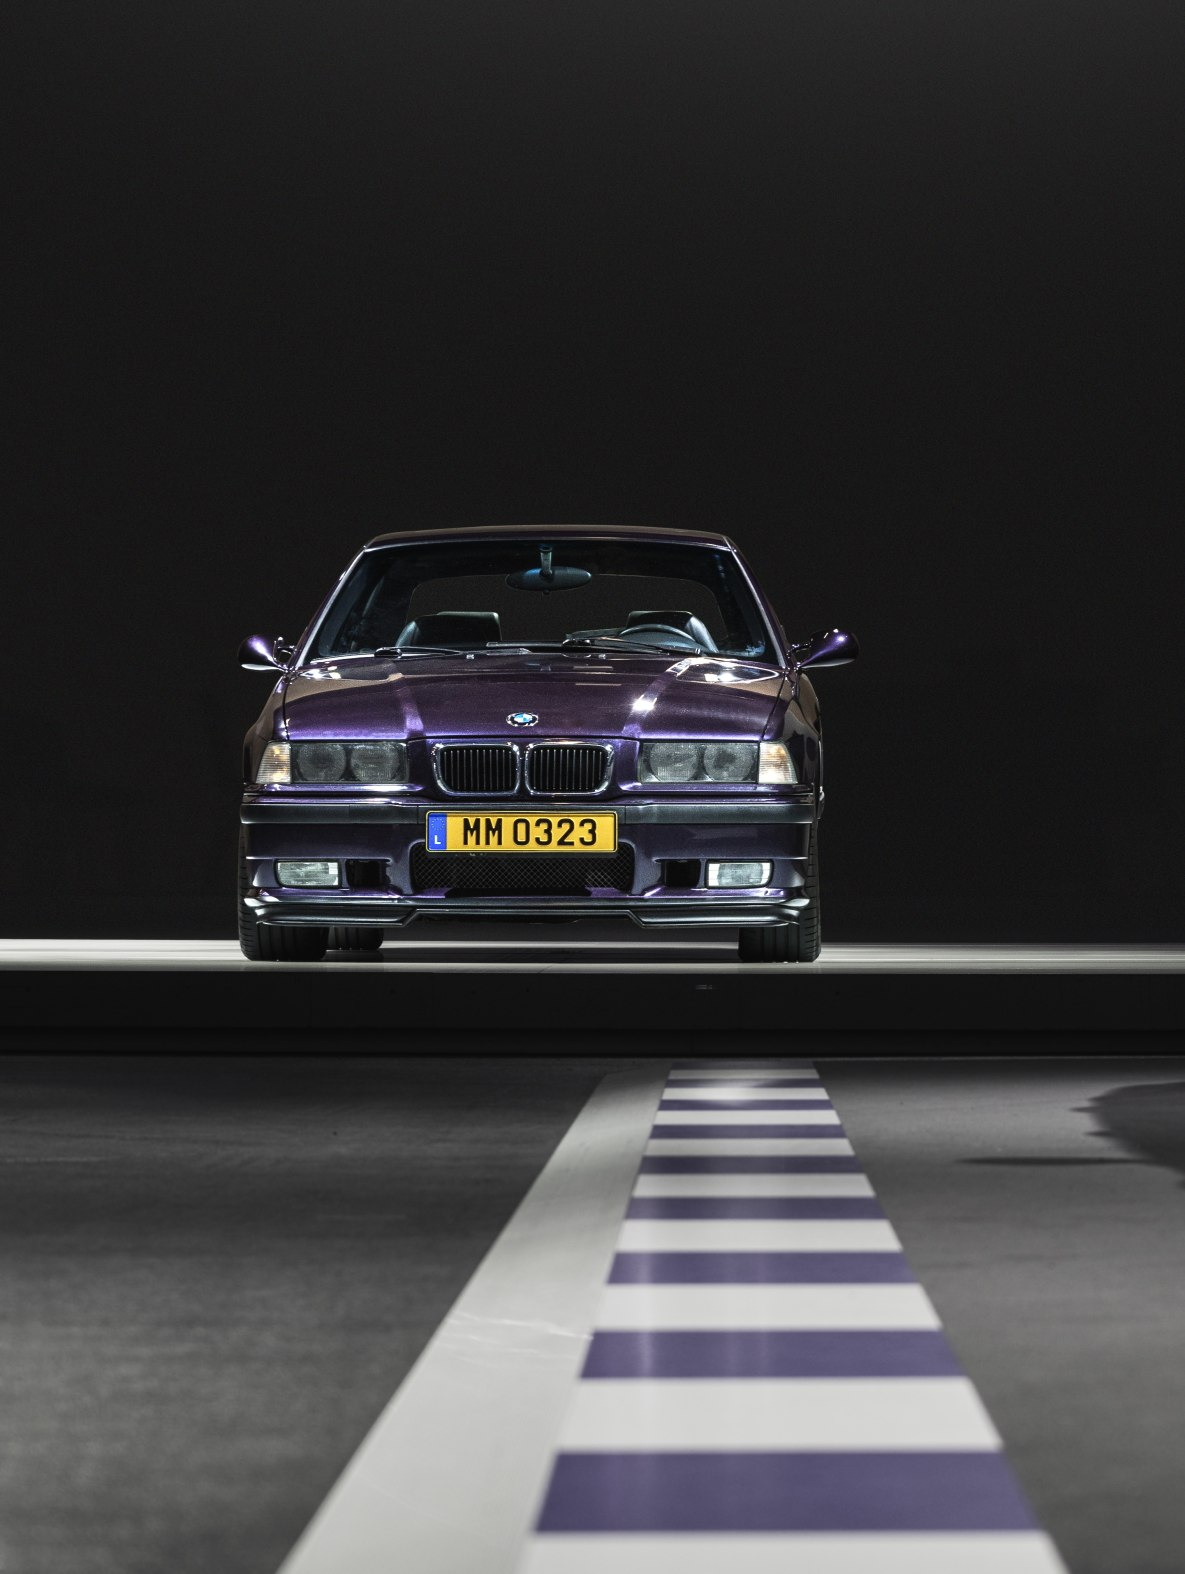 The BMW E36 M3 Compact from Frank Kohn